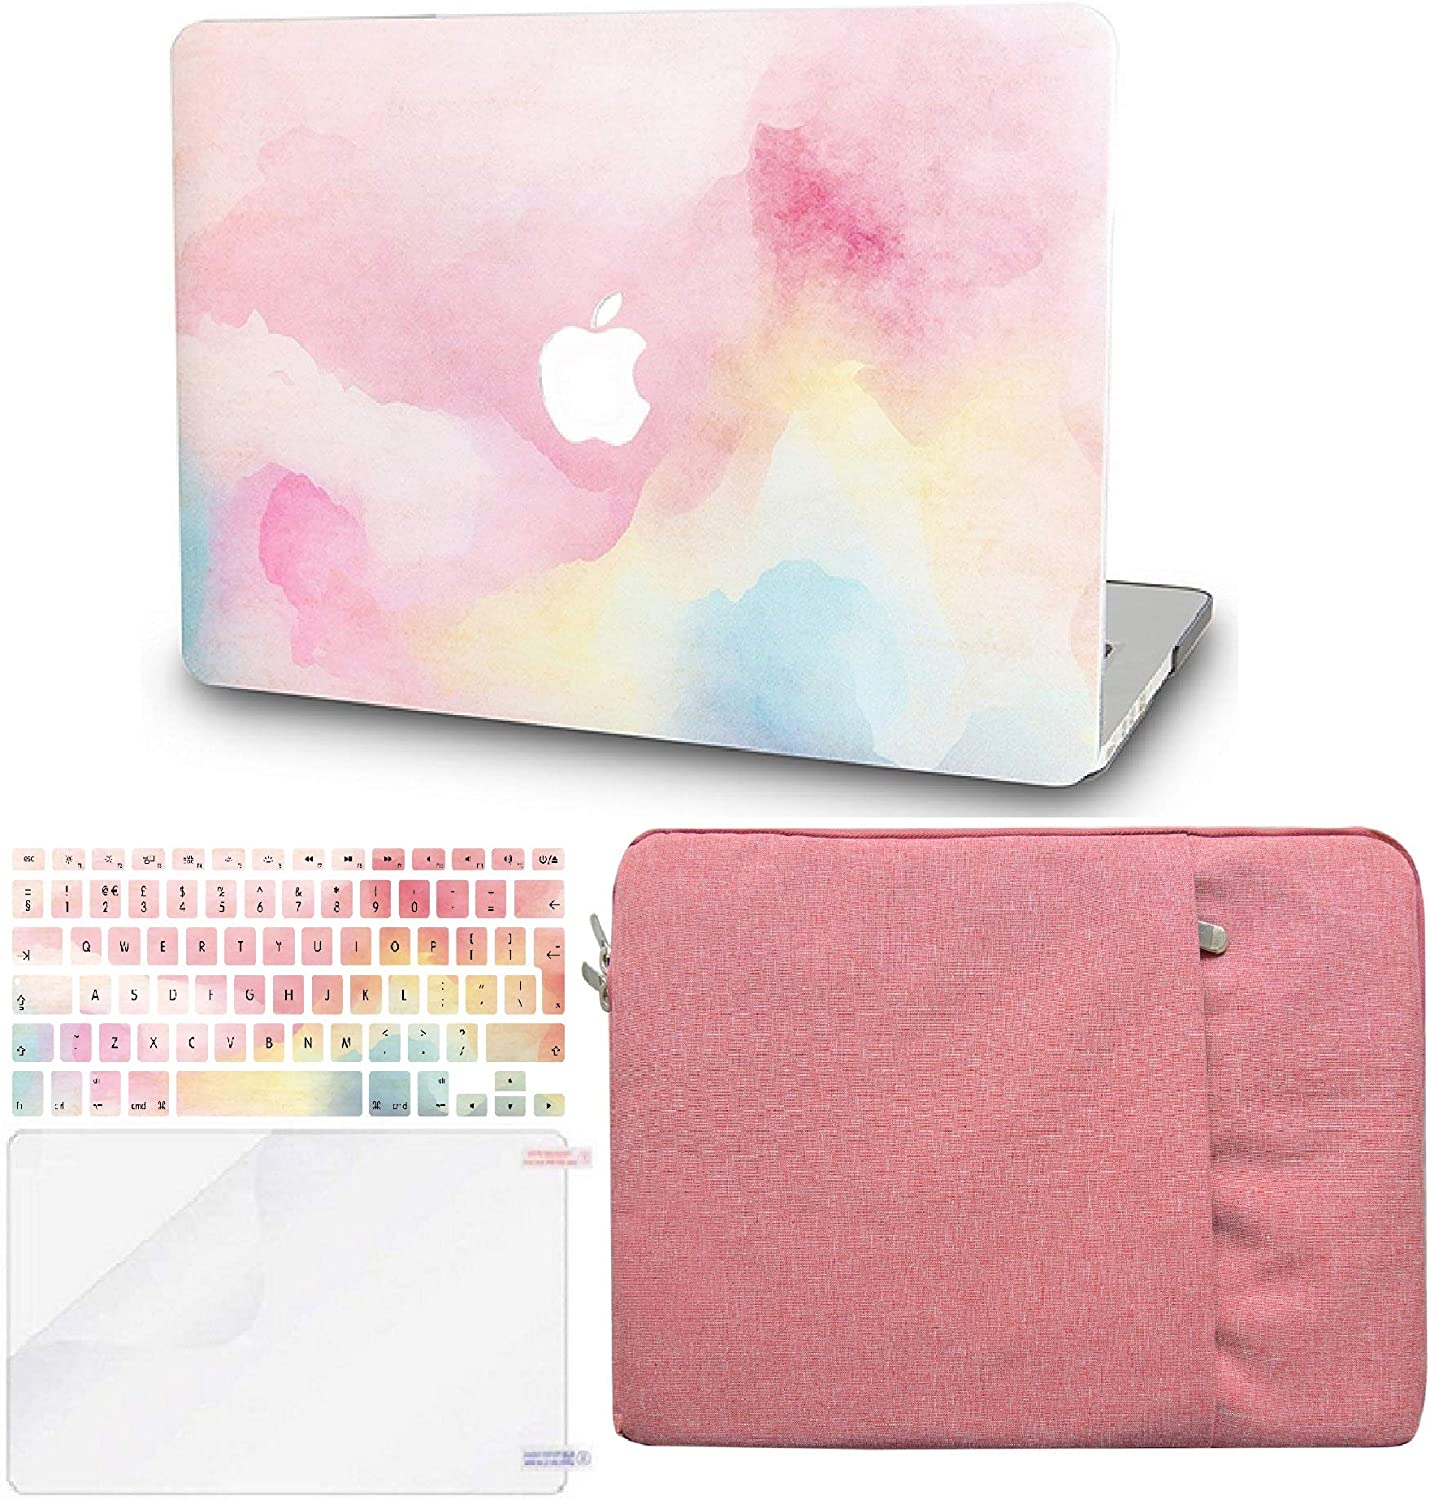 "KECC Laptop Case for MacBook Air 13"" w/Keyboard Cover + Sleeve + Screen Protector (4 in 1 Bundle) Plastic Hard Shell Case A1466/A1369 (Rainbow Mist)"